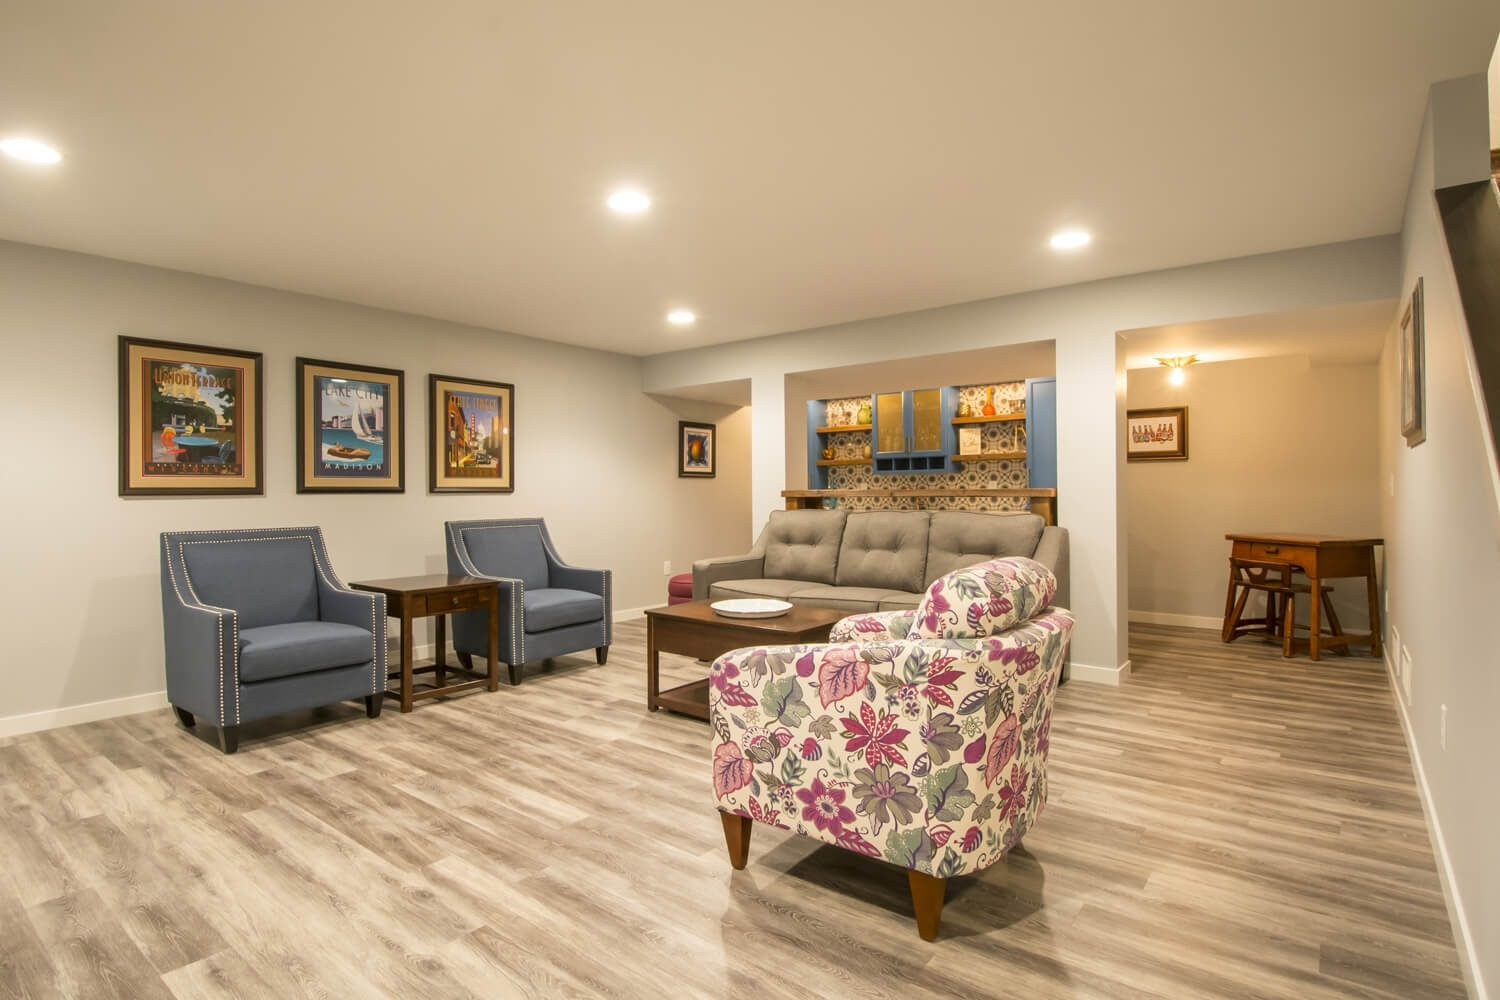 Best ideas about Small Basement Ideas . Save or Pin Small Basement Remodeling Ideas — New Home Design Now.